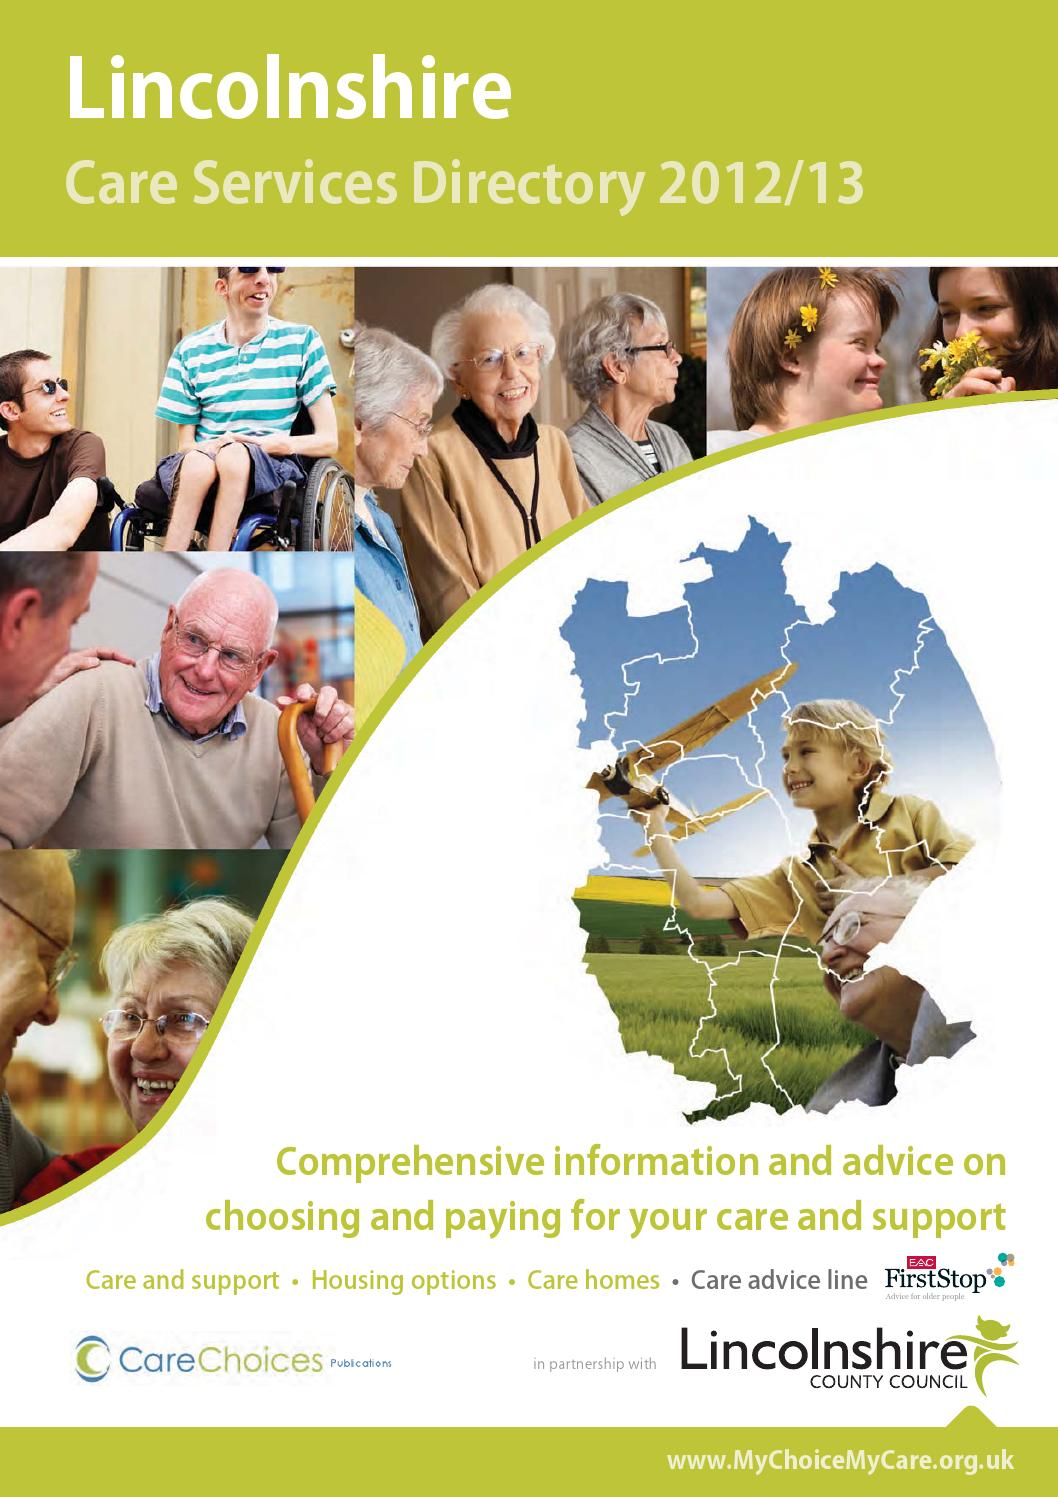 Tom Taylor Our Team Northorpe Hall Child And Family Trust Lincolnshire Care Services Directory 2012 13 By Care Choices Ltd